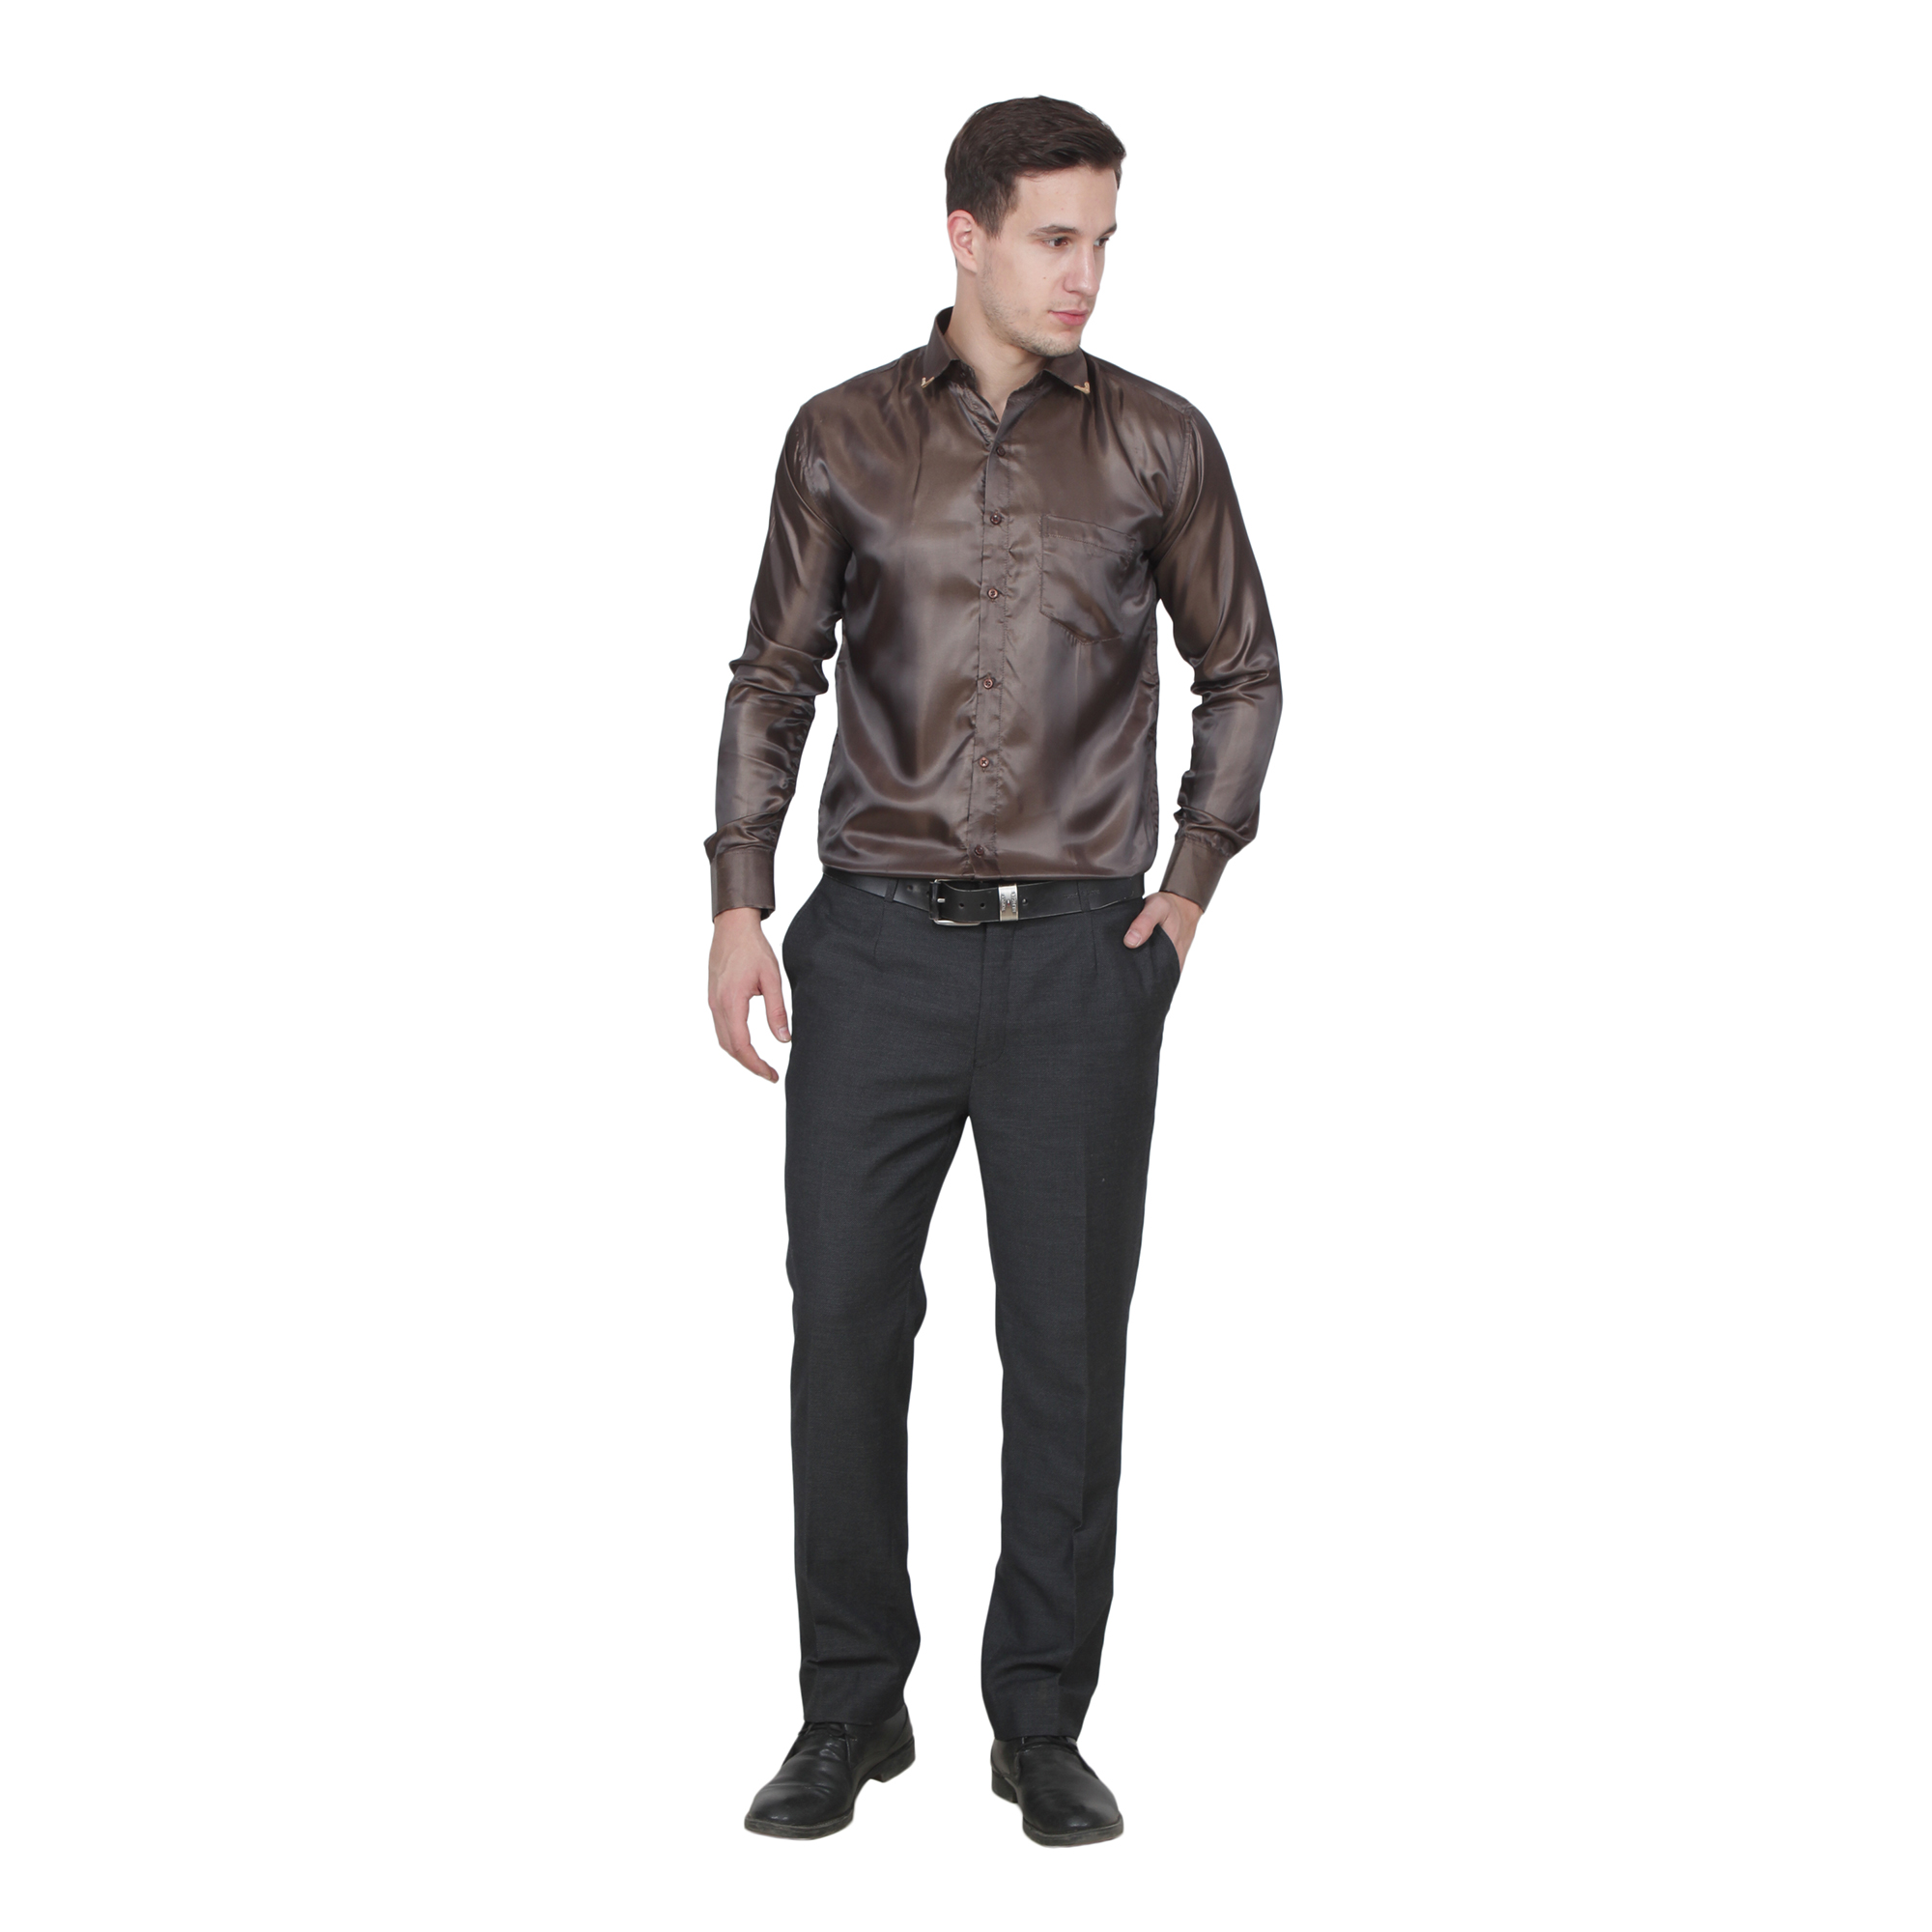 Men Party Wear Shirts  Color Maroon